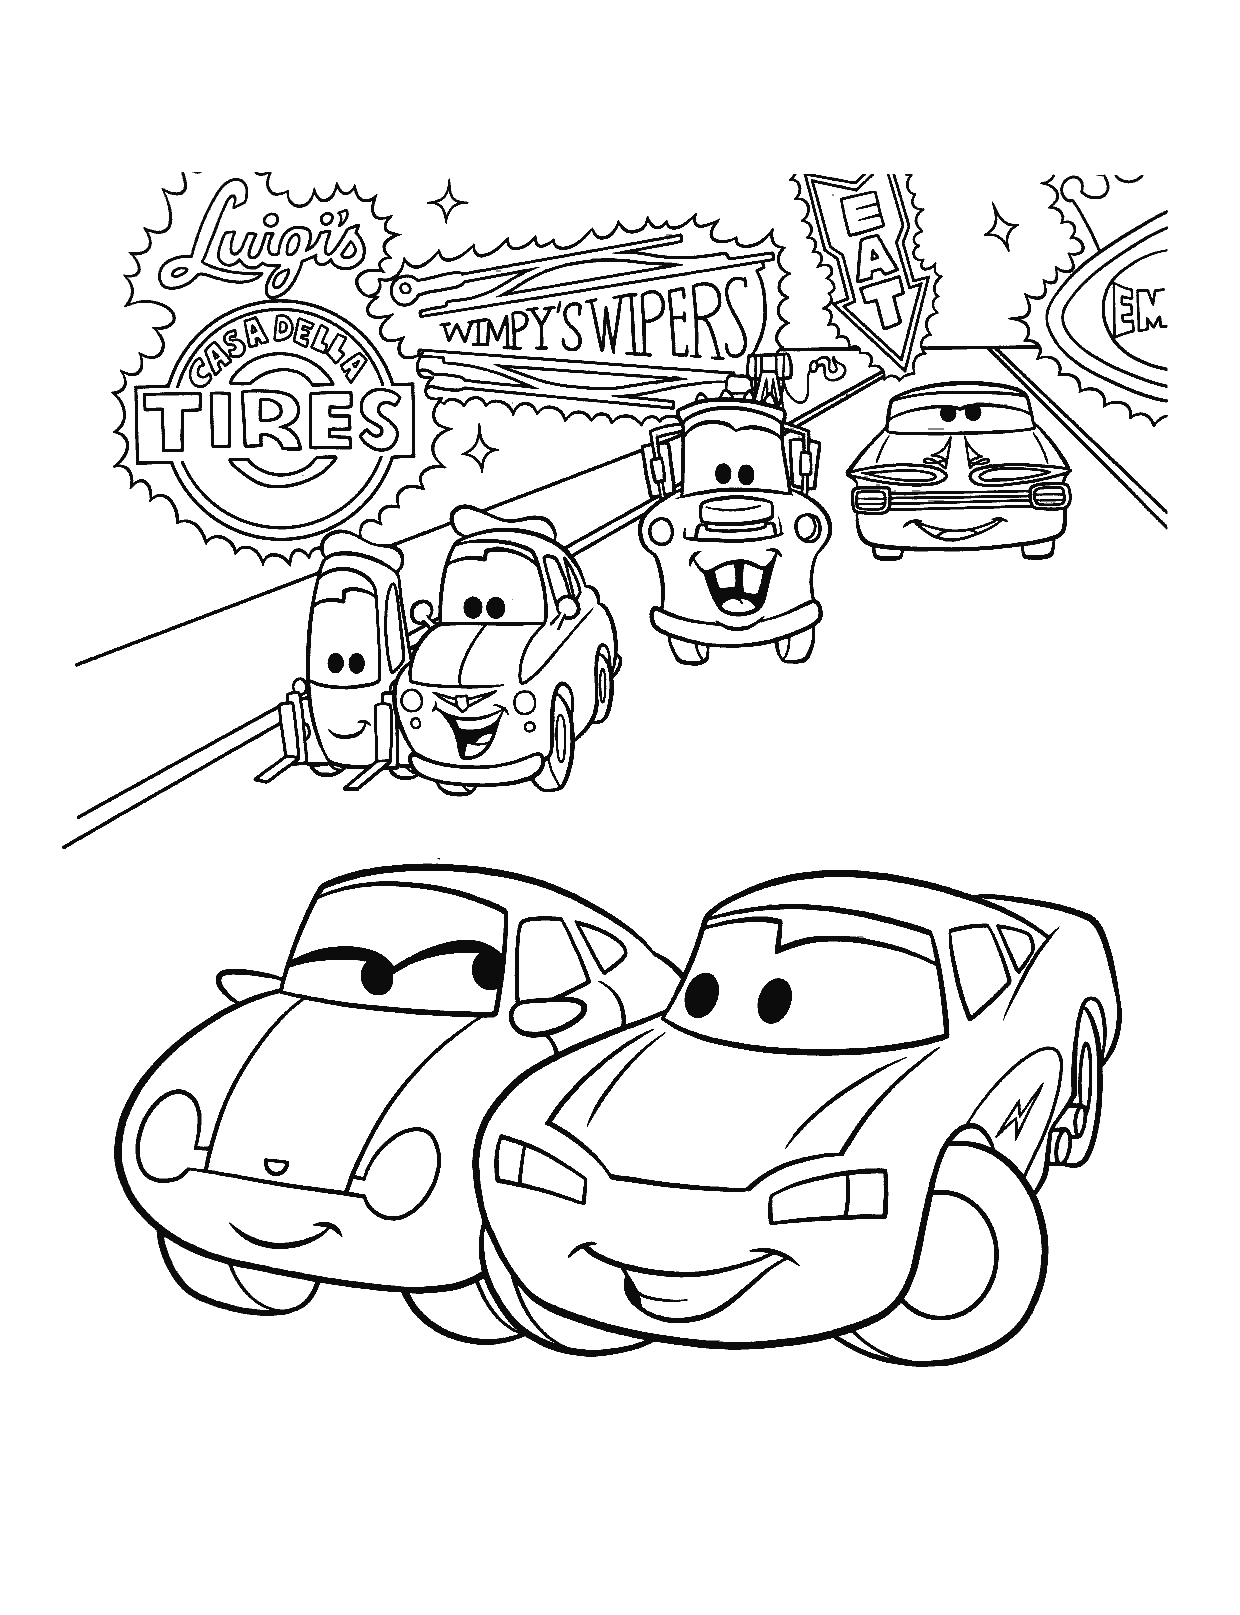 cars movie colouring pages remember the movie cars coloring this picture of lightning pages cars movie colouring